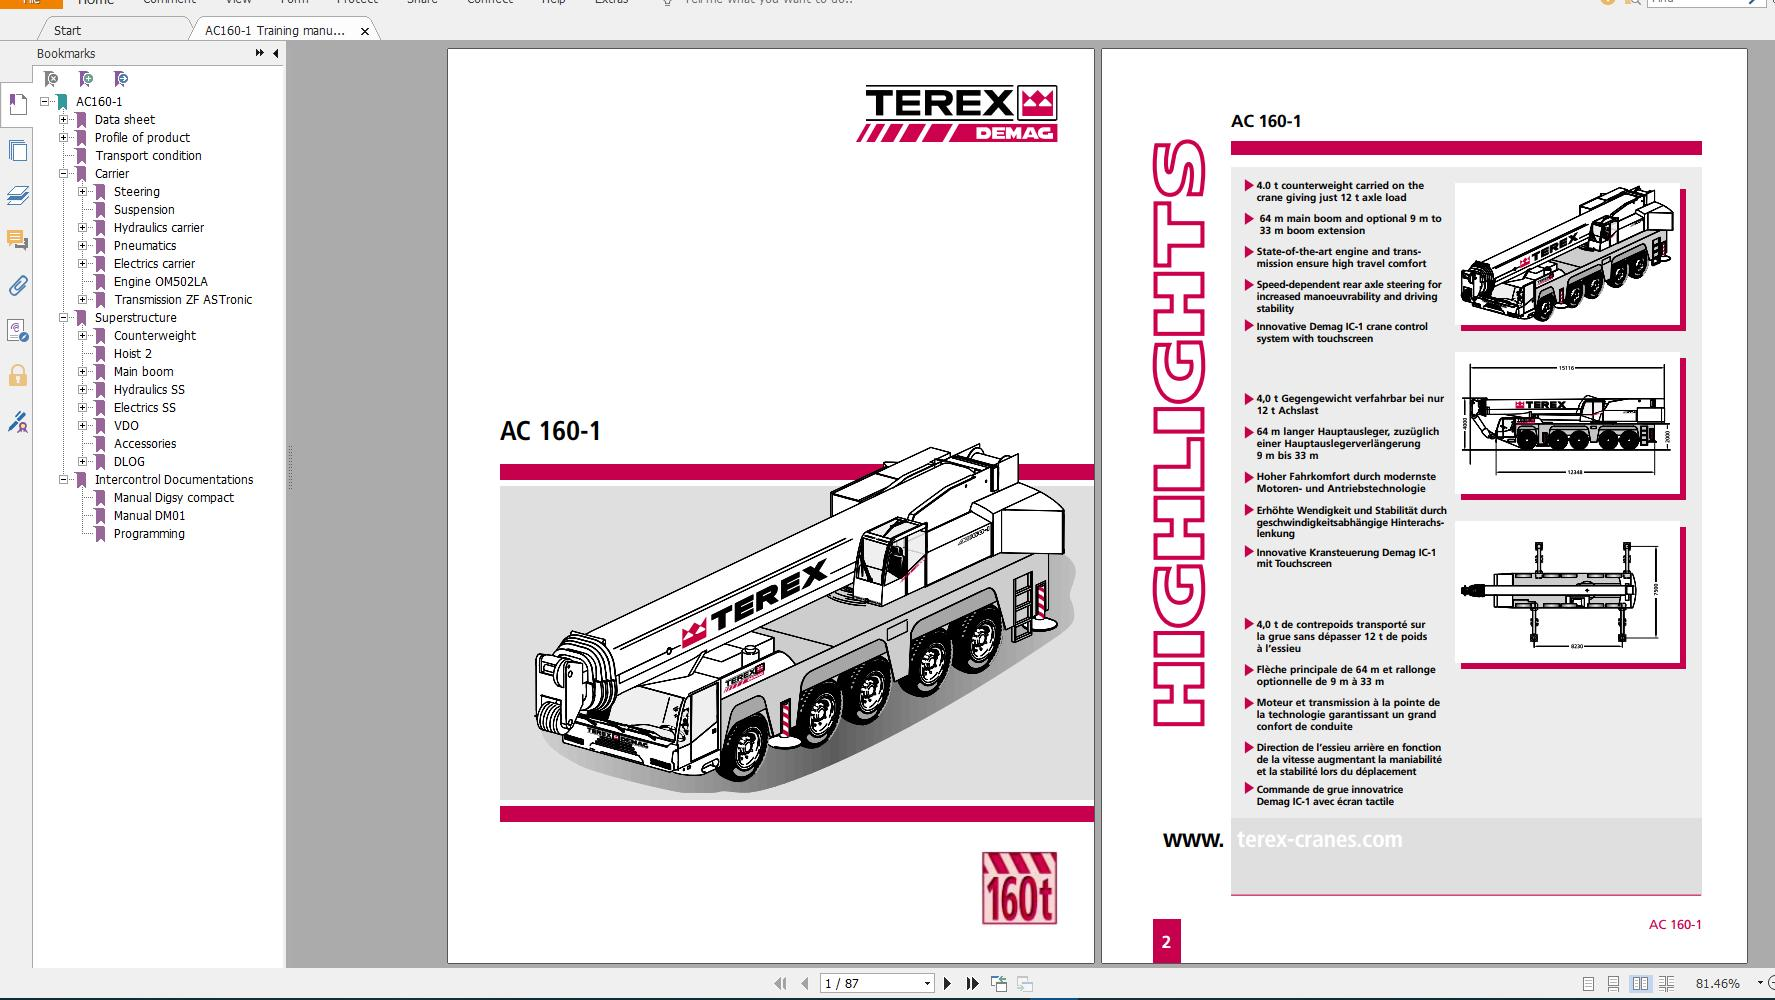 Terex Demag Mobile Crane AC160-1 180 ton Technical Manual, Operator Manual and Schematic